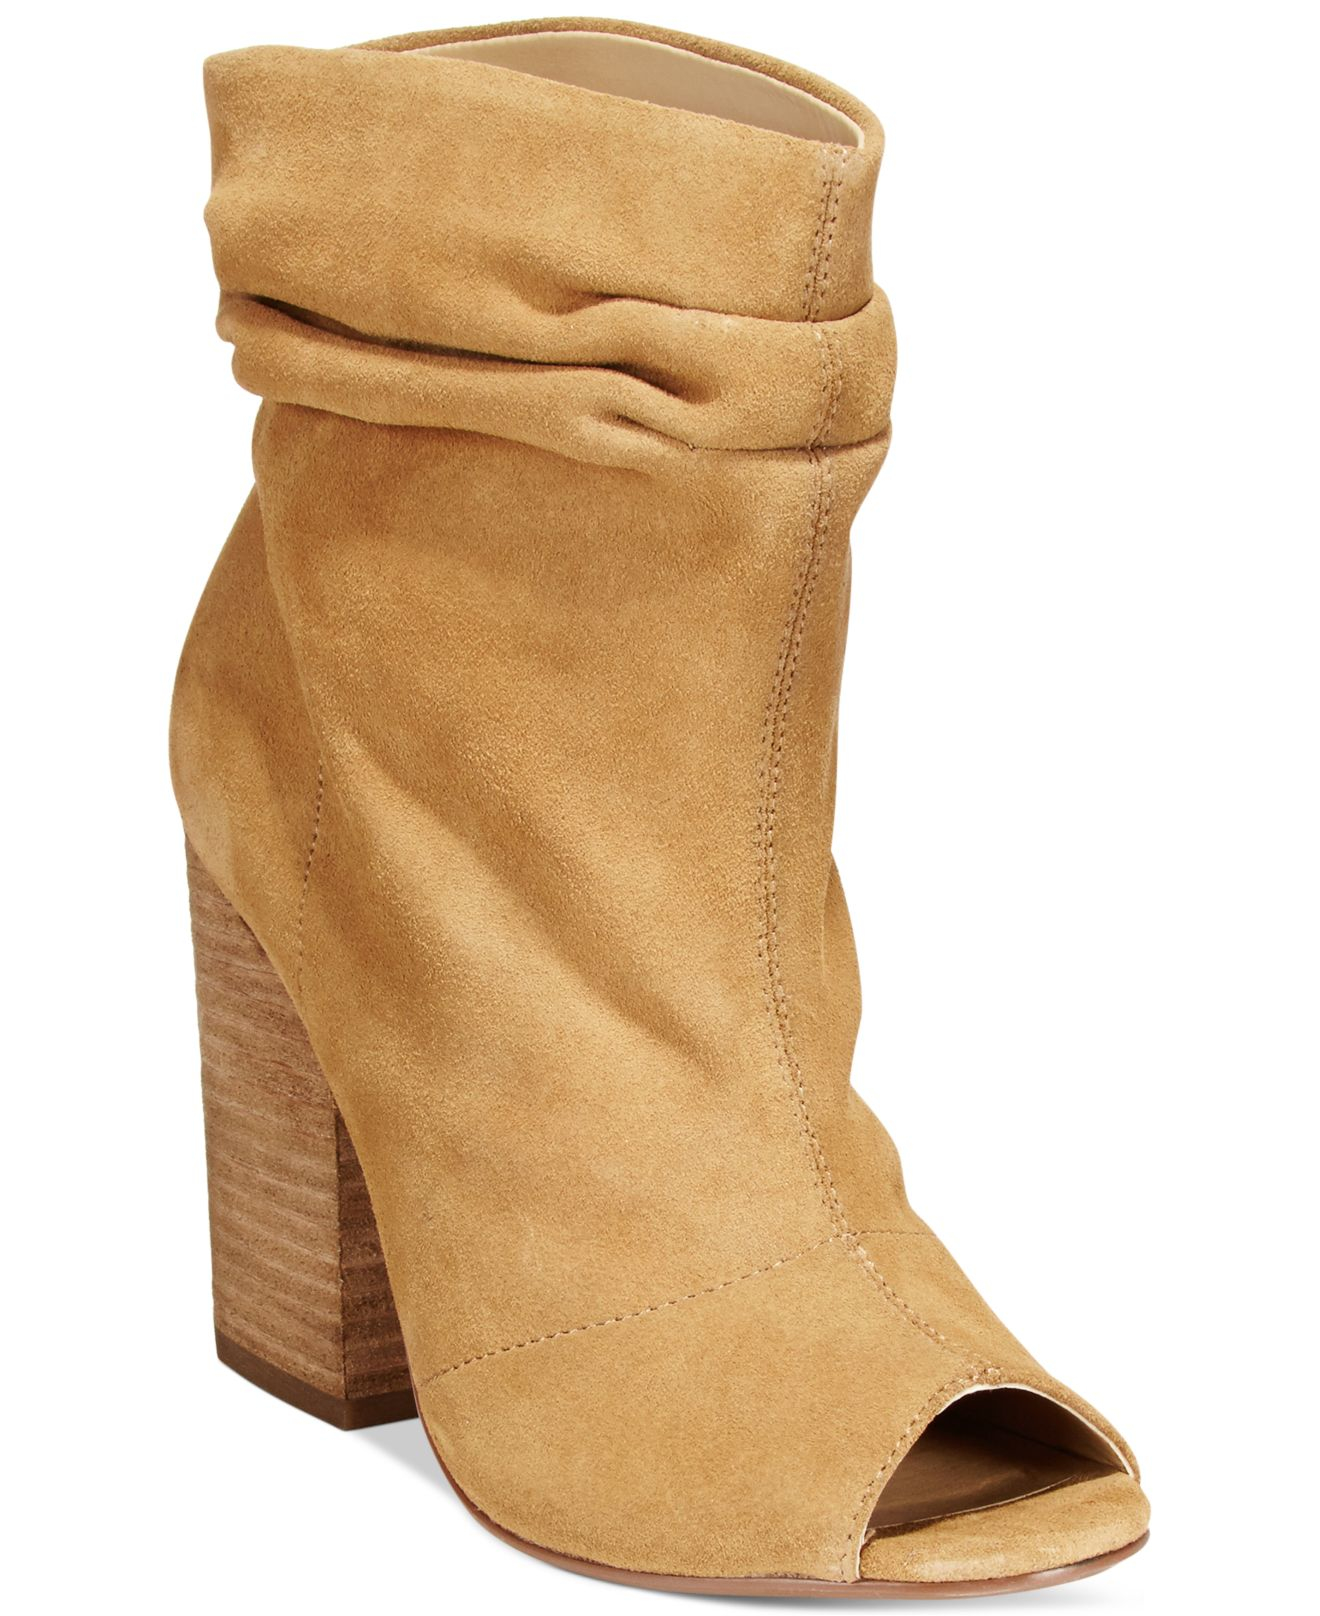 Lyst - Chinese Laundry Break Up Peep-toe Suede Slouchy Booties in ... 3a6fe179b